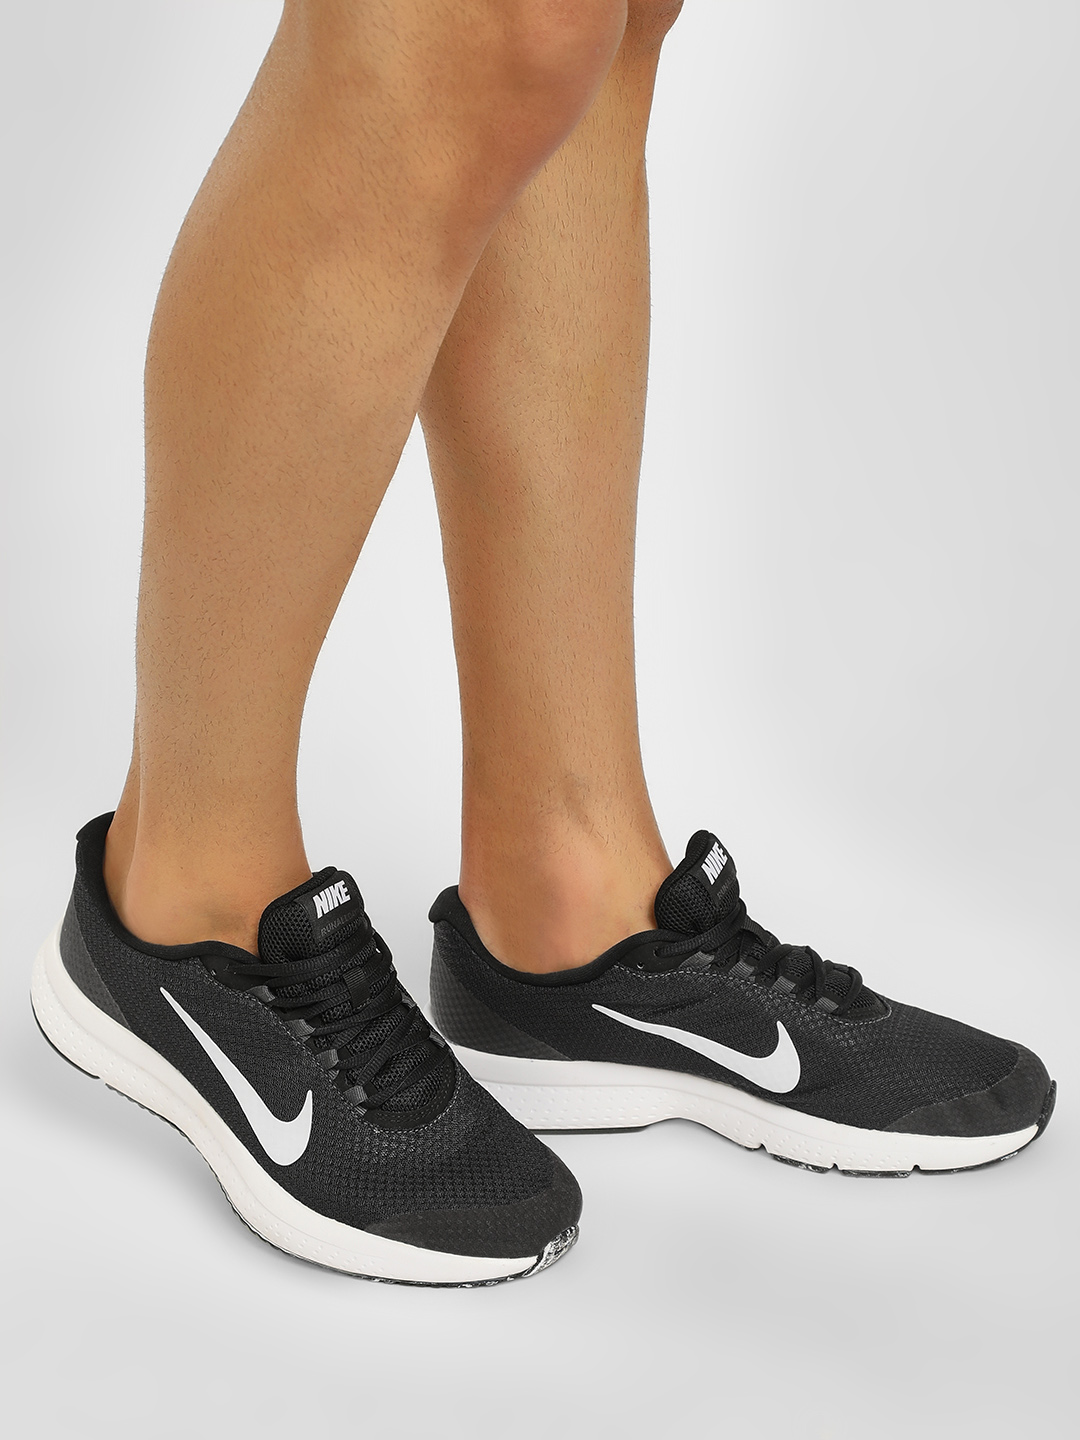 Nike Black Run All Day Shoes 1